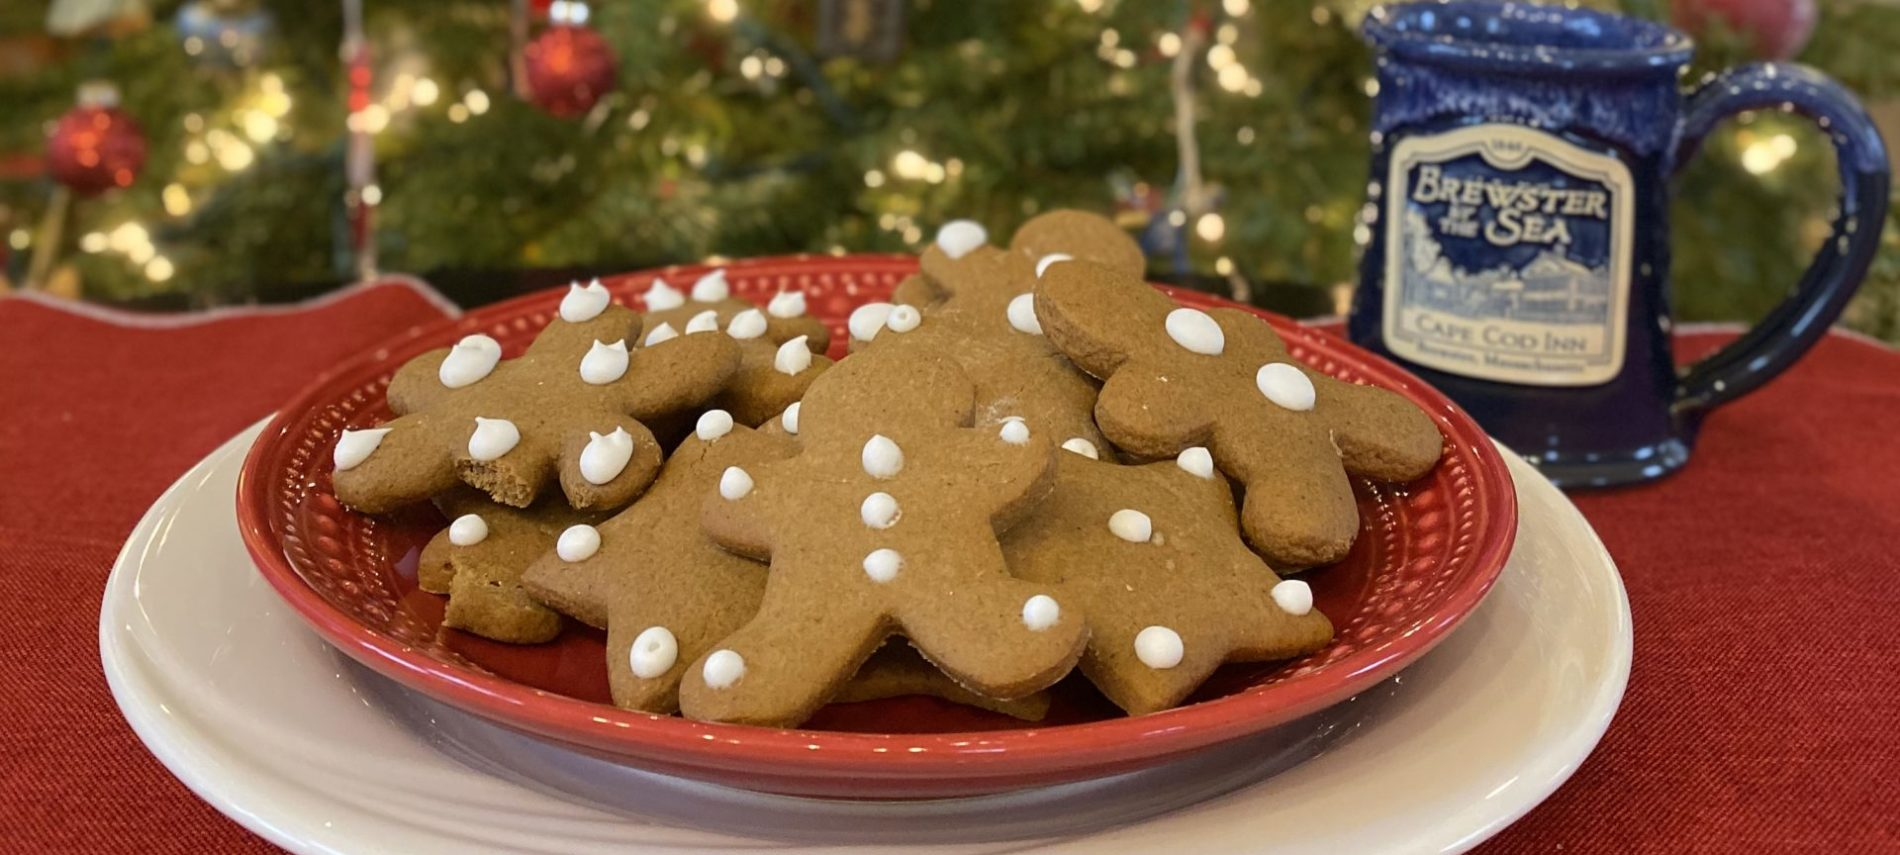 Gingerbread cookies on a plate in front of a Christmas tree